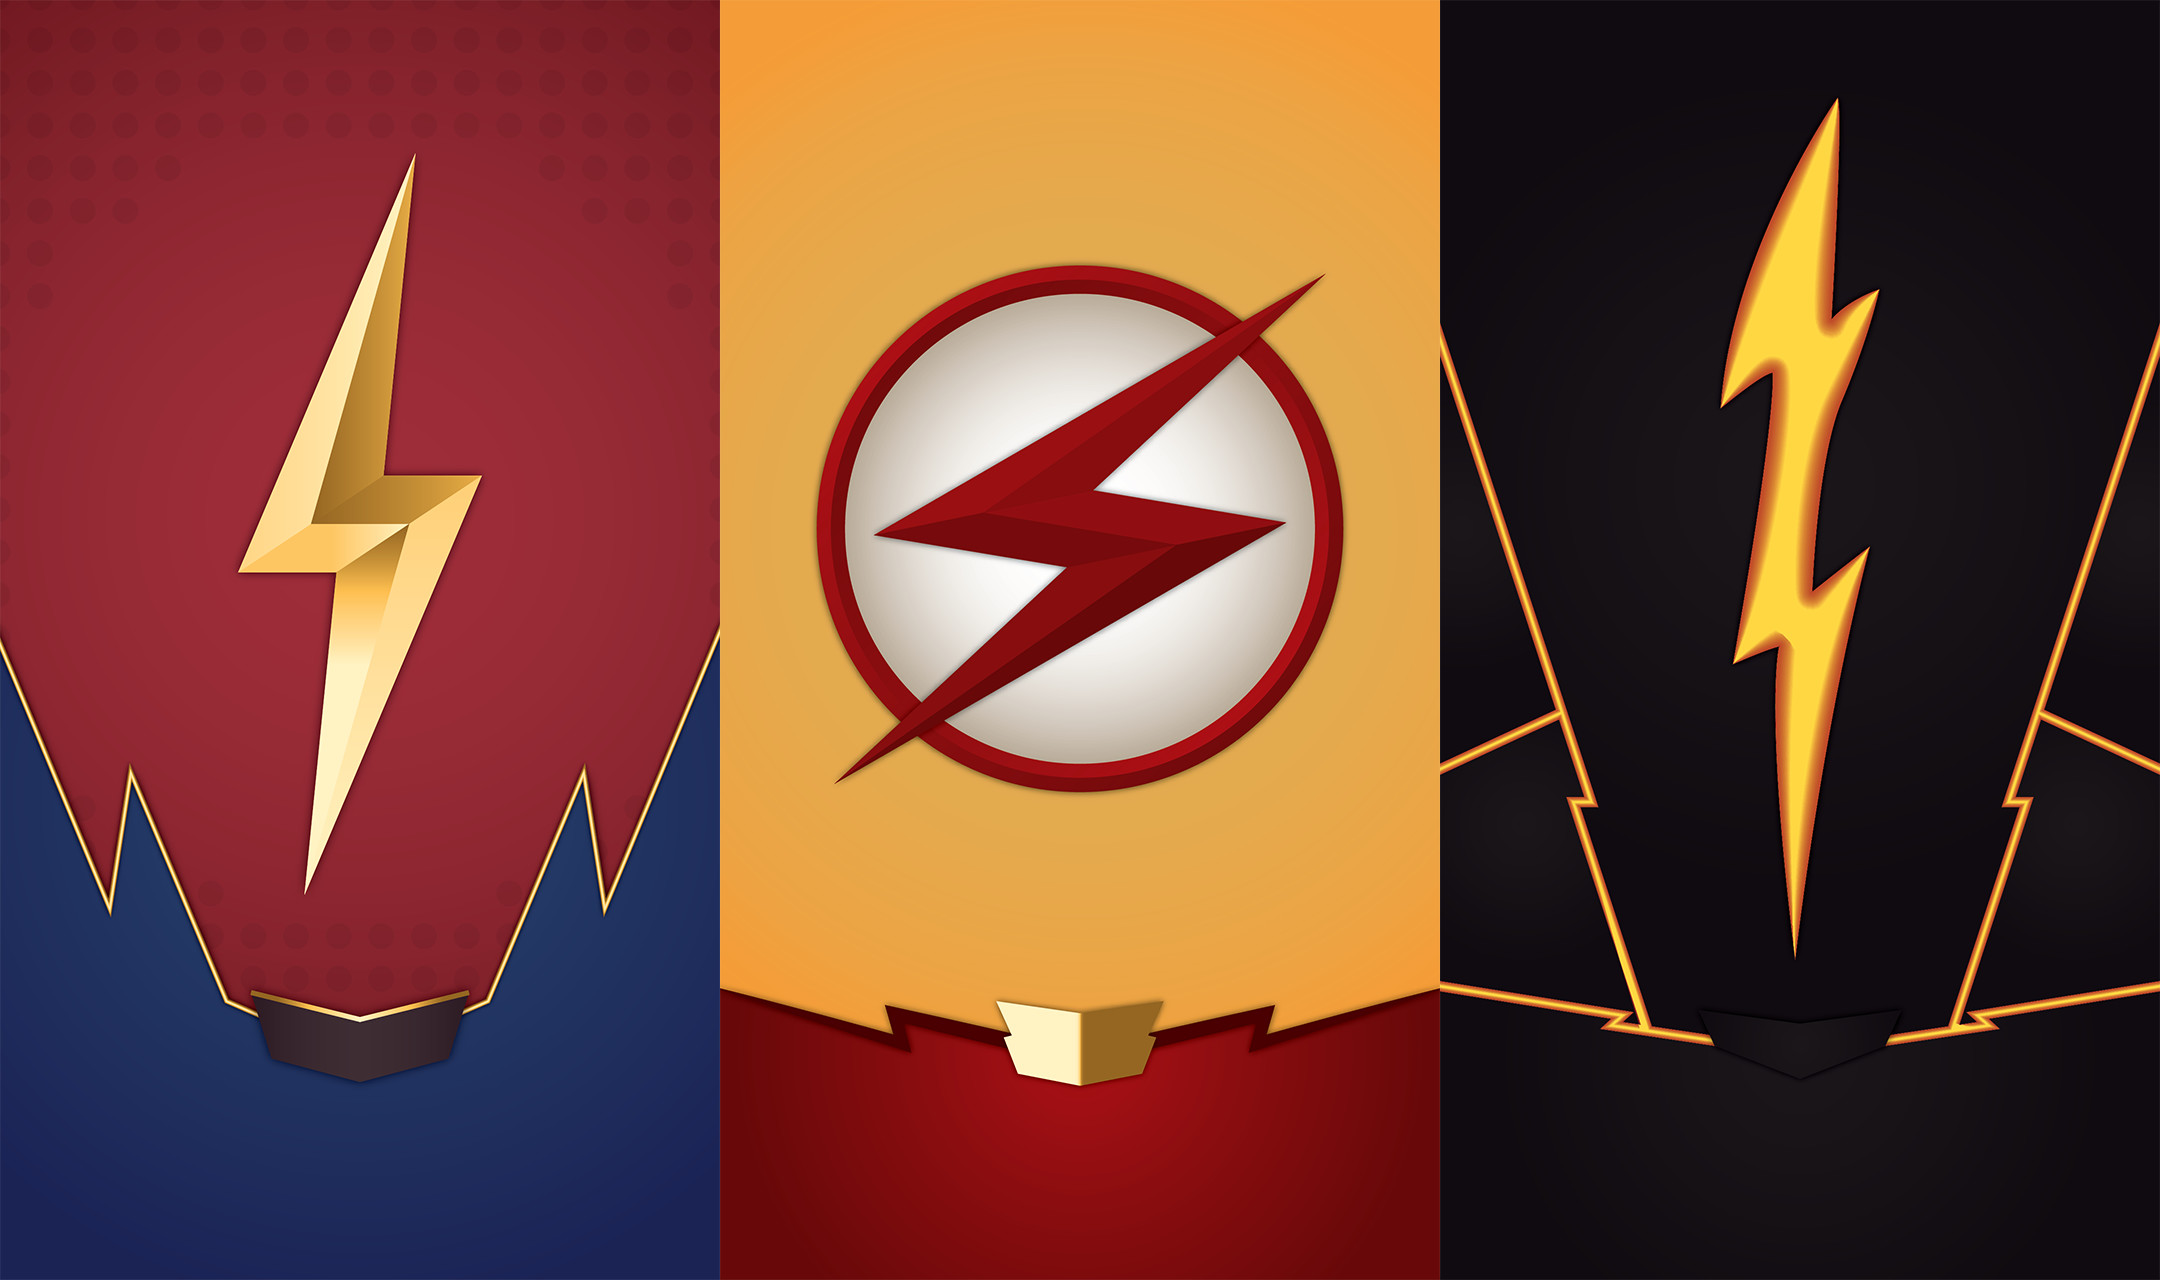 When I showed my friend these wallpapers, they said they liked the Reverse  Flash one. We are no longer friends.